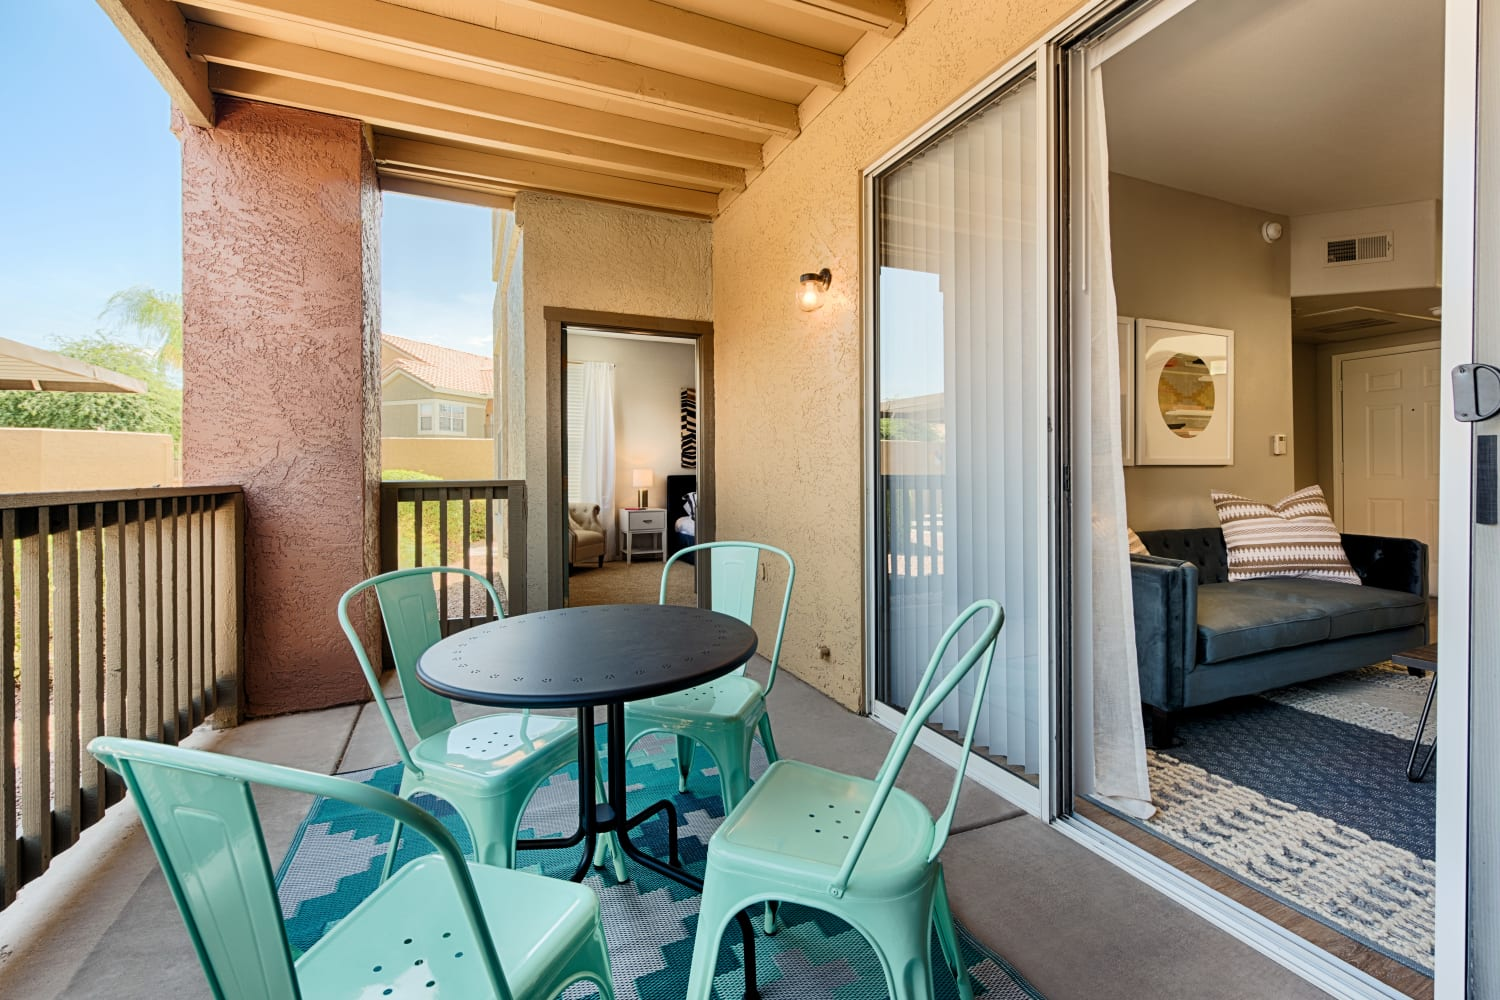 Sonoran Vista Apartments in Scottsdale, Arizona, offer relaxing private patios with each apartment